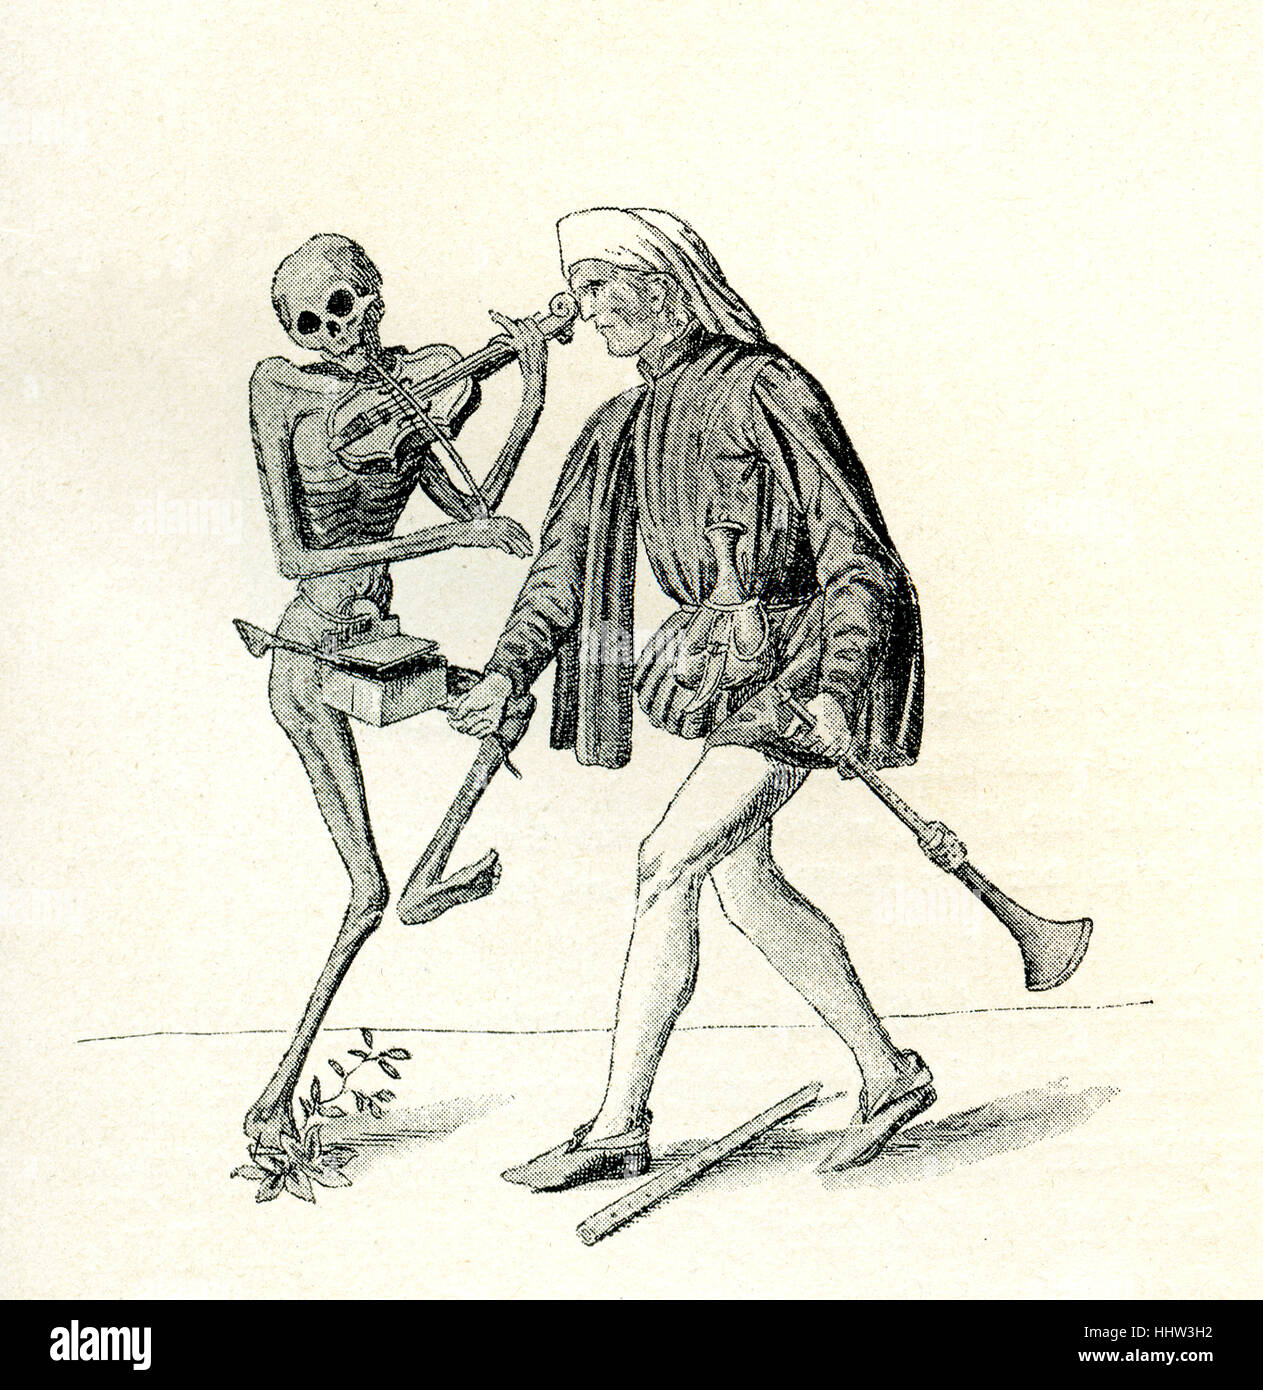 Dance of Death / Totentanz - detail of the memento mori mural painted on the wall of the cemetary of the Predigerkirche - Stock Image